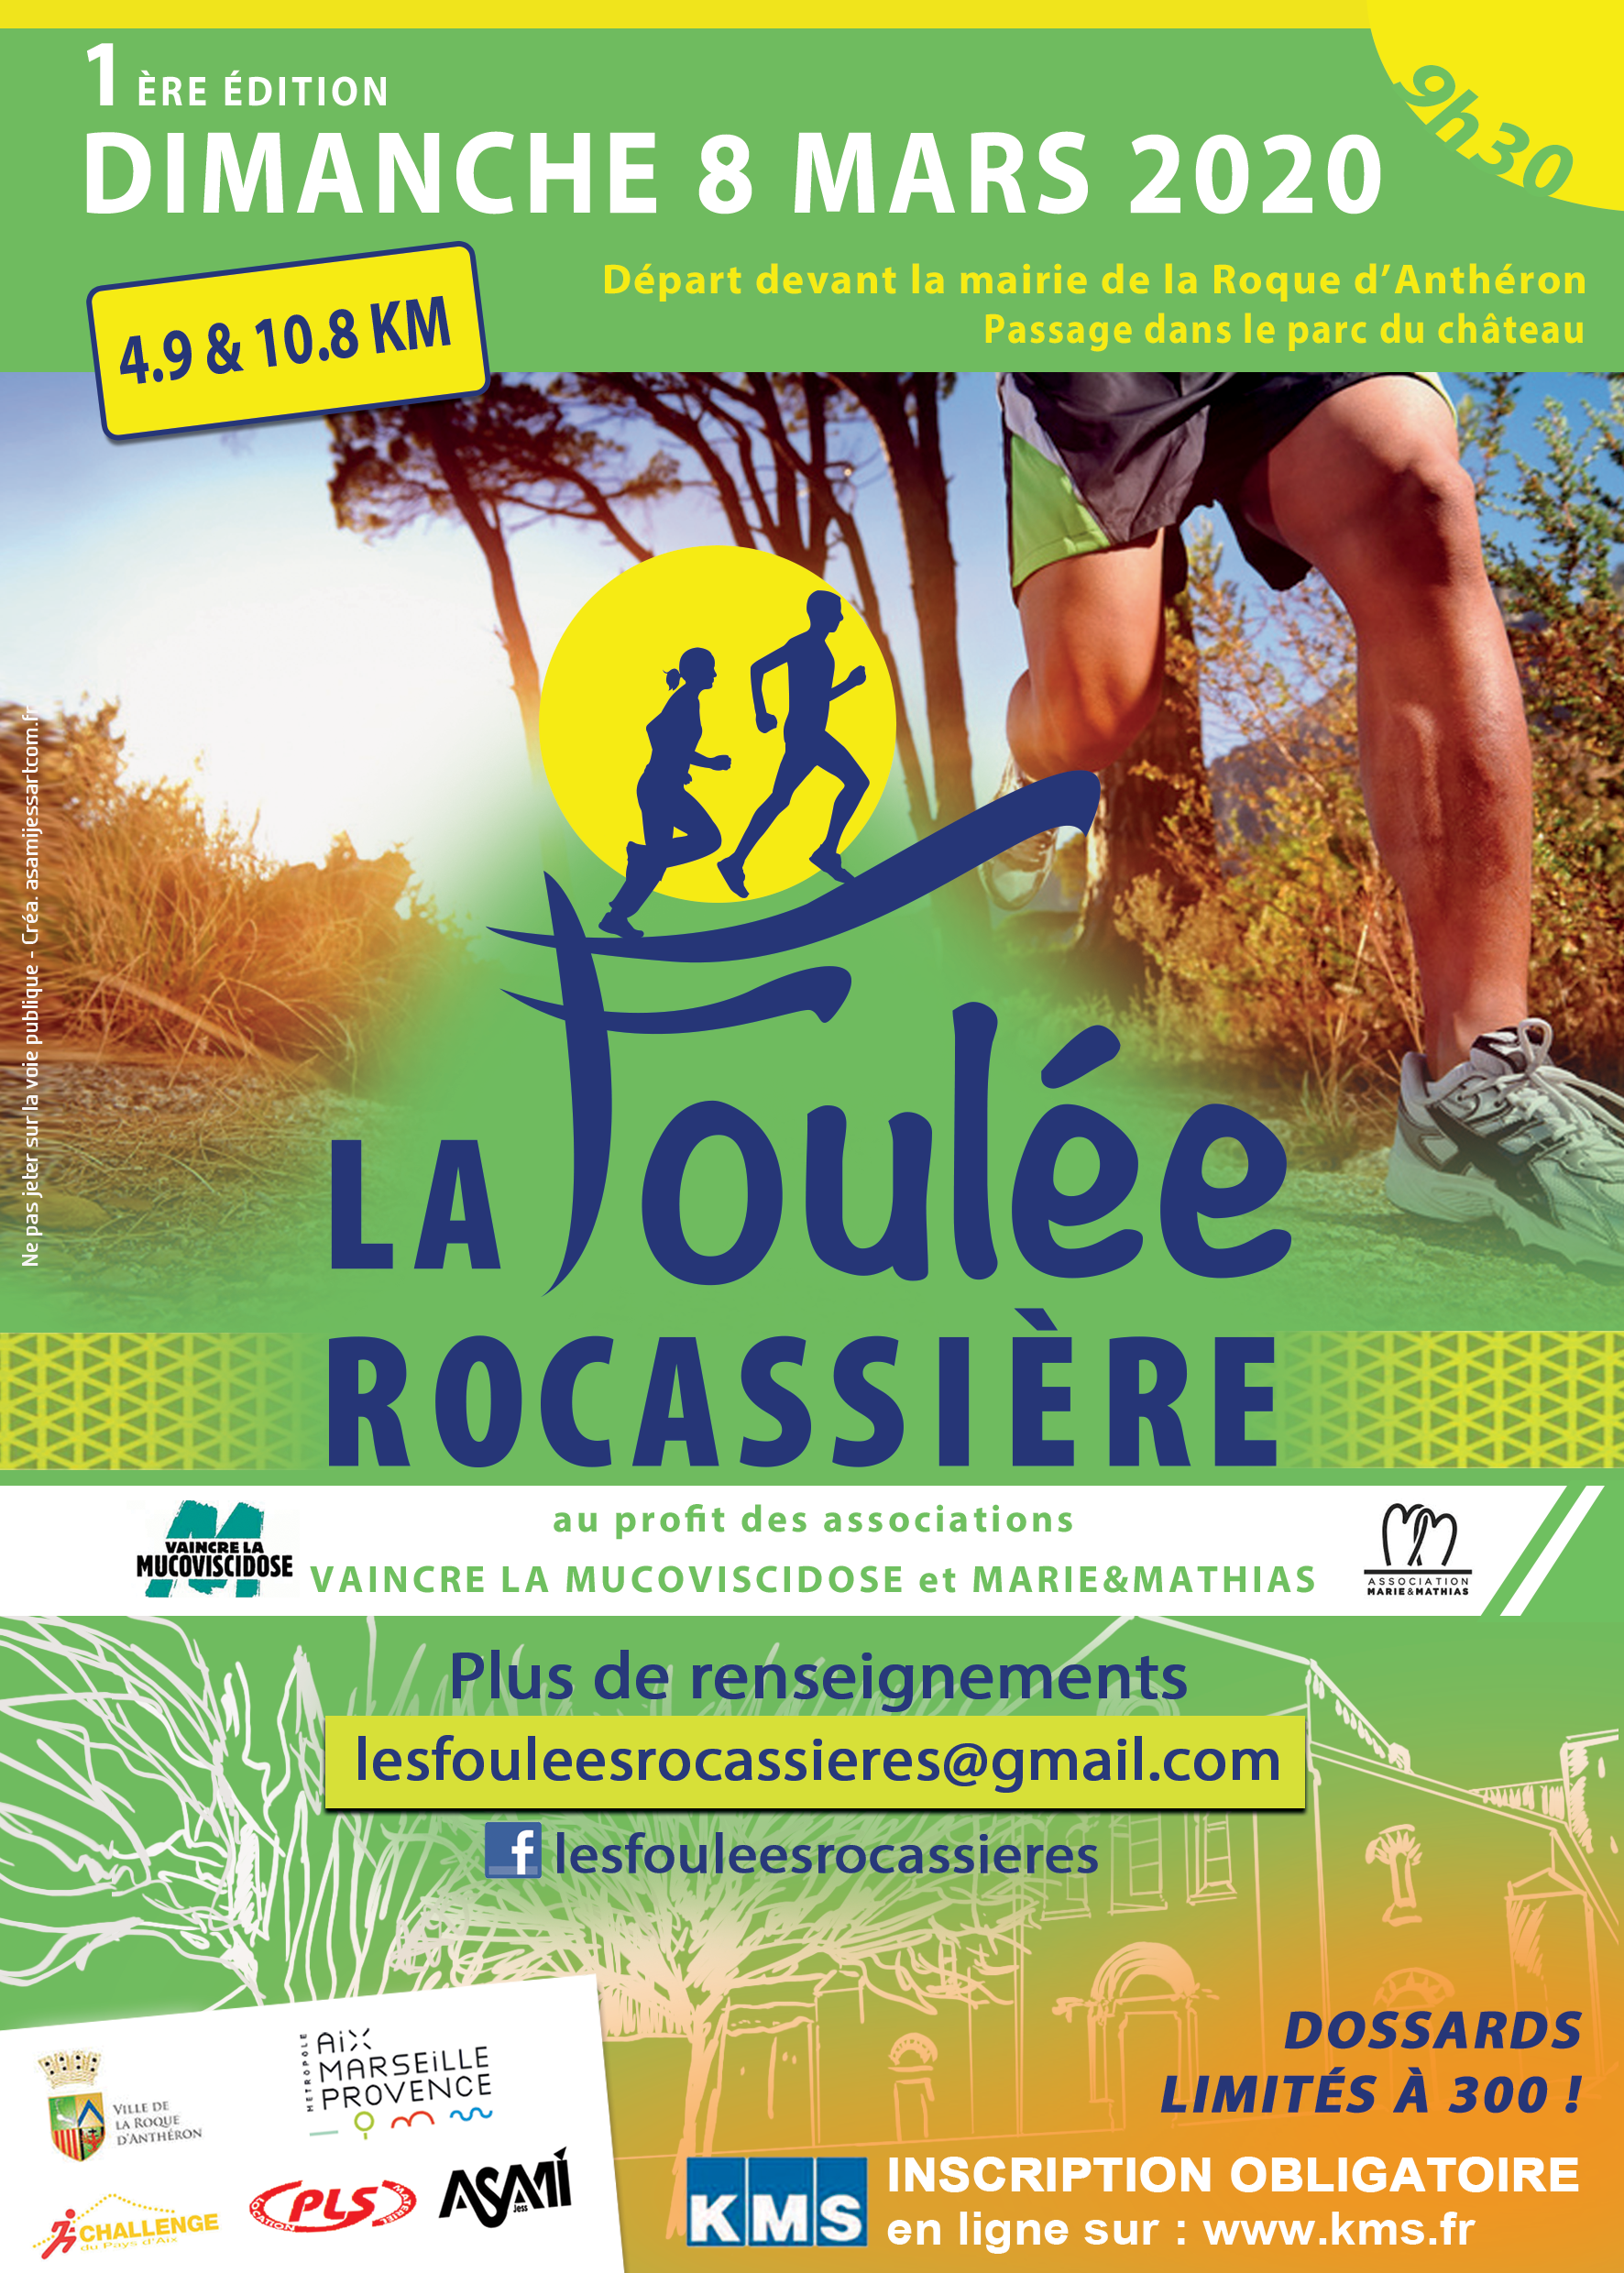 Foulee Rocassiere : 4,9 Km